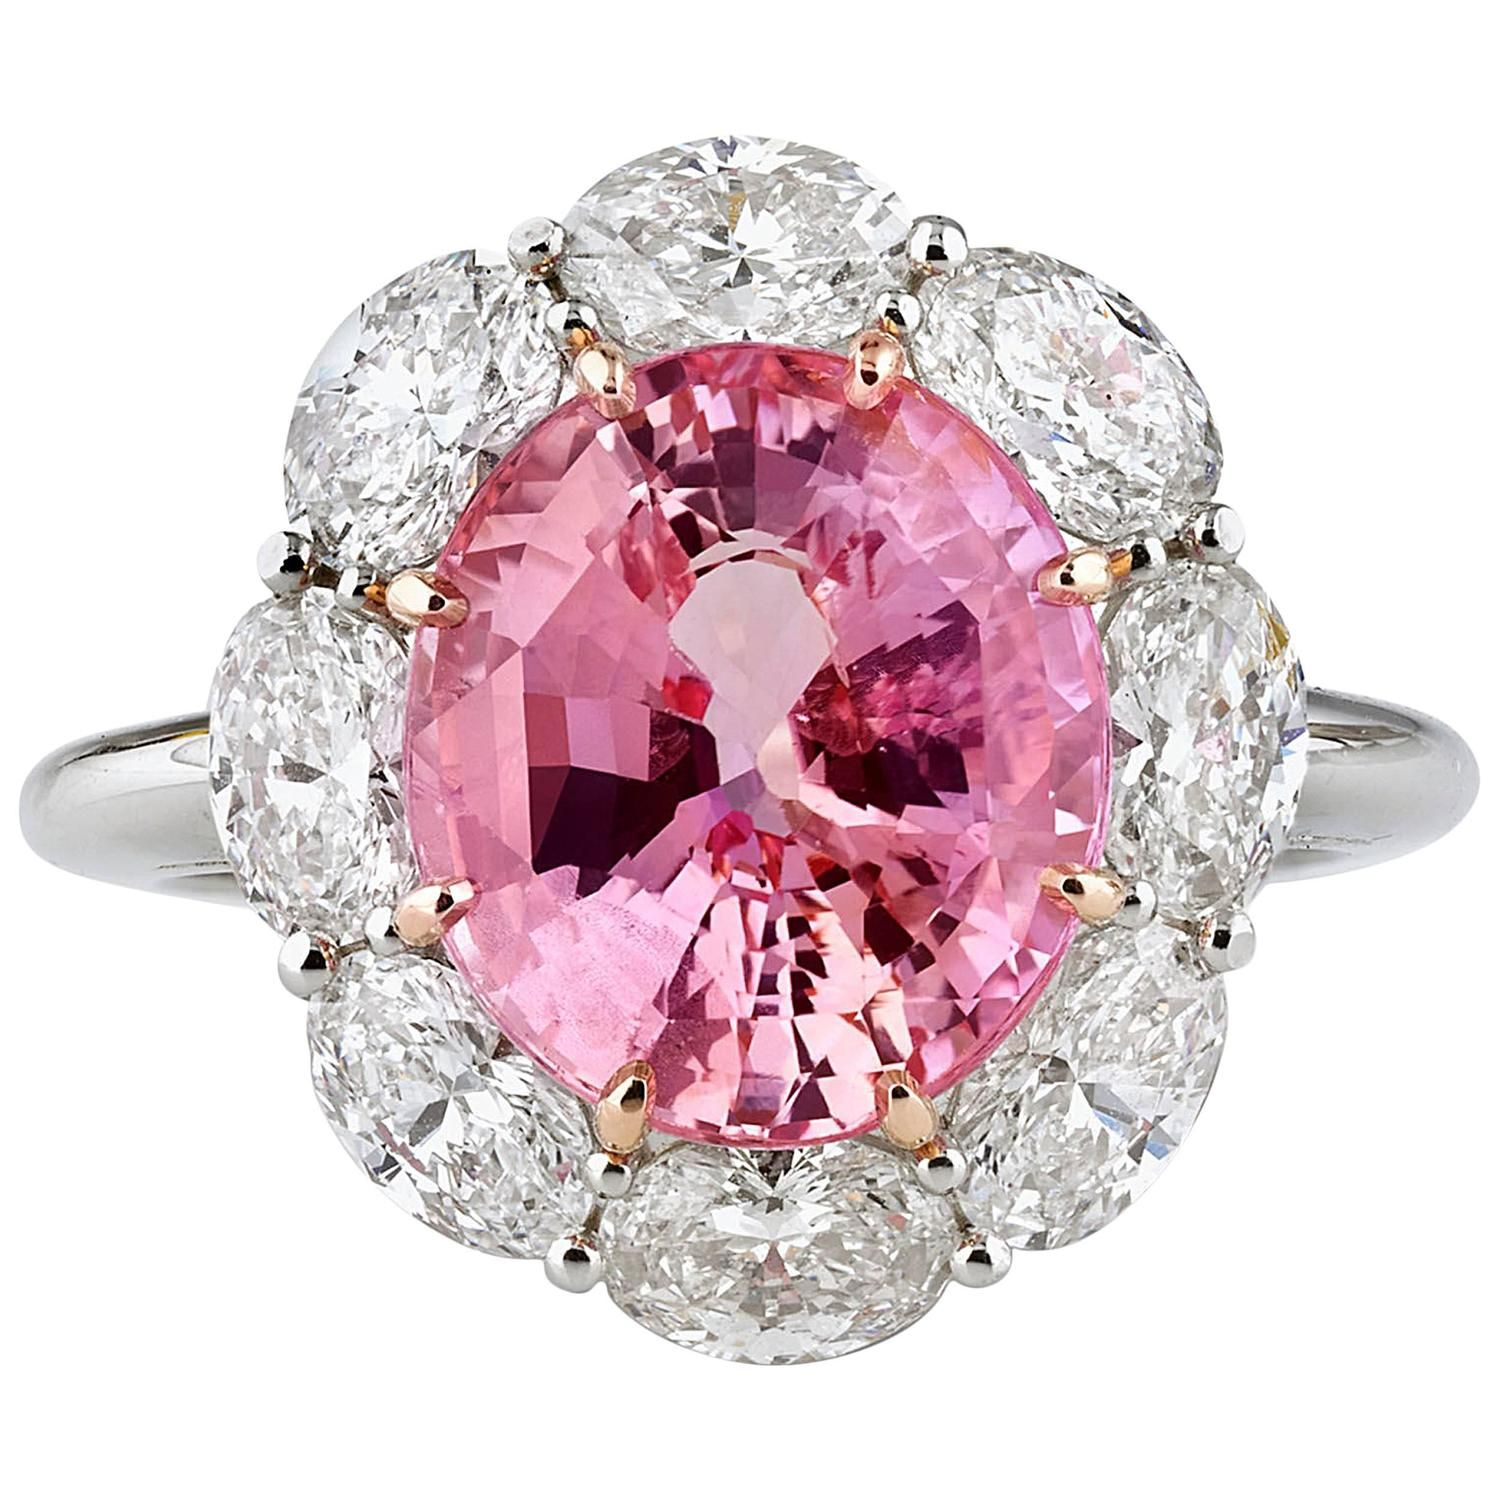 5.61 Carats Untreated Padparadscha Sapphire Diamond Gold Ring | Gold ...